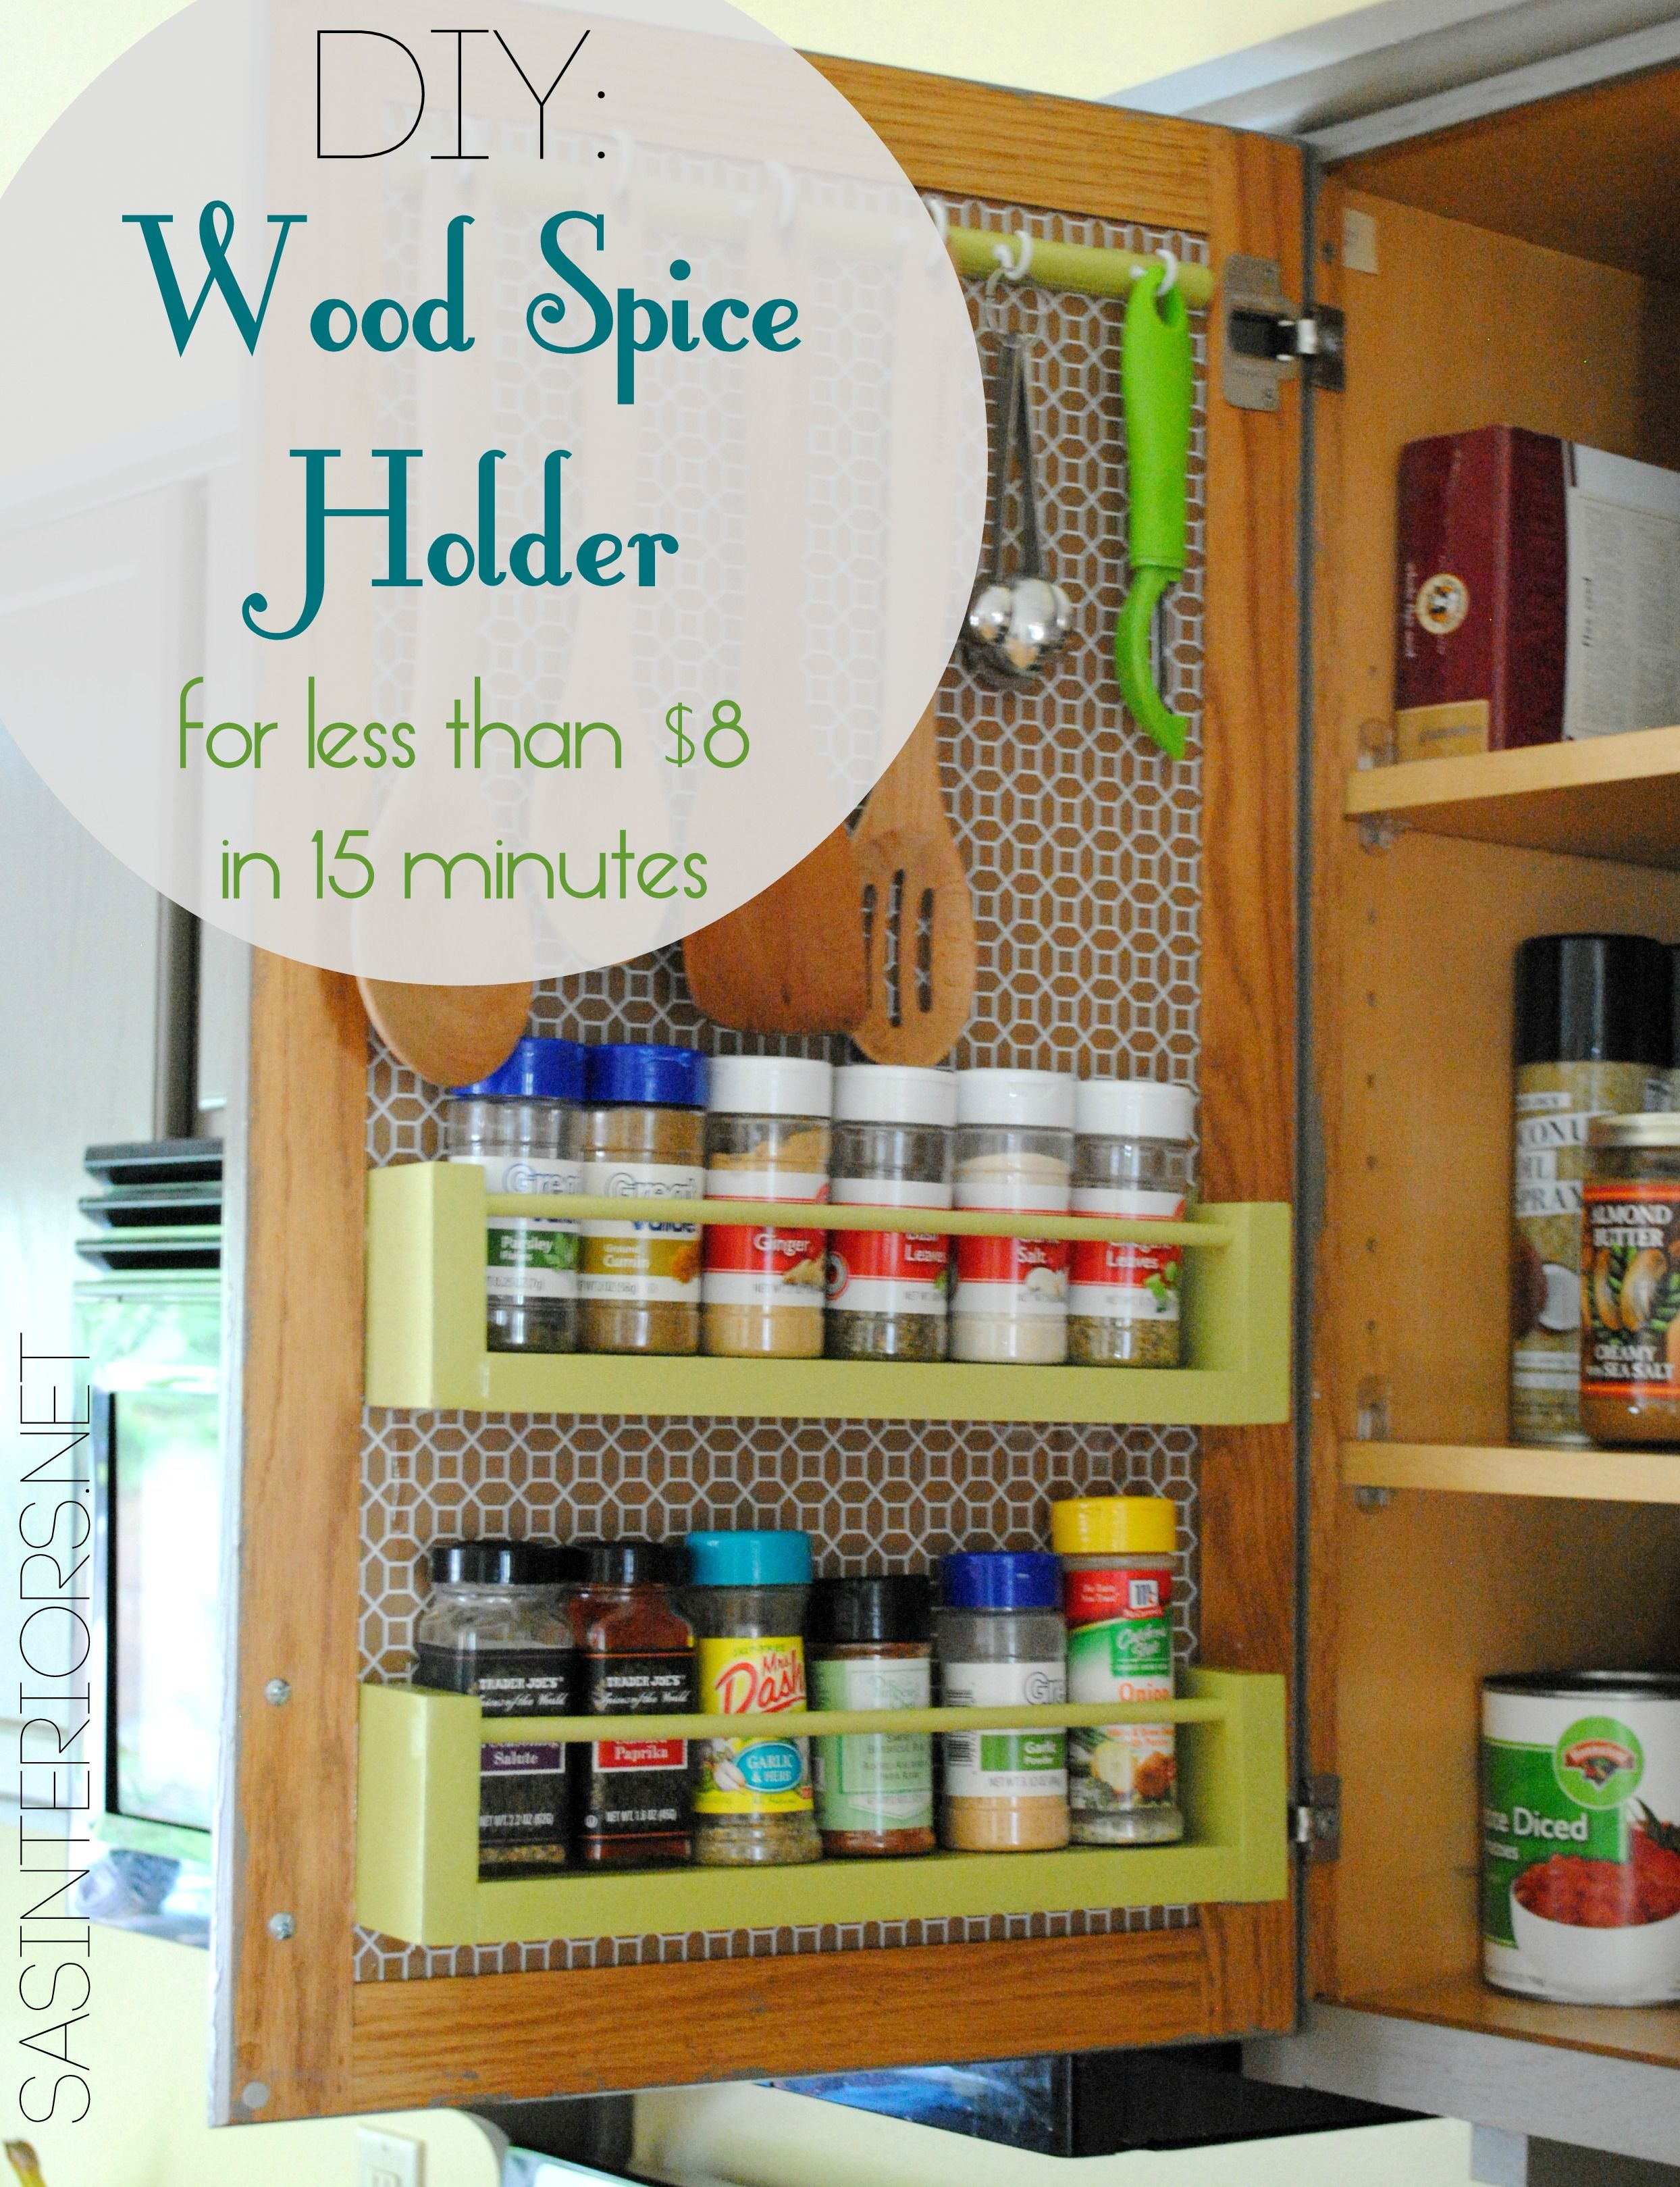 DIY Wood Spice Rach Holder for inside the kitchen cabinets Less